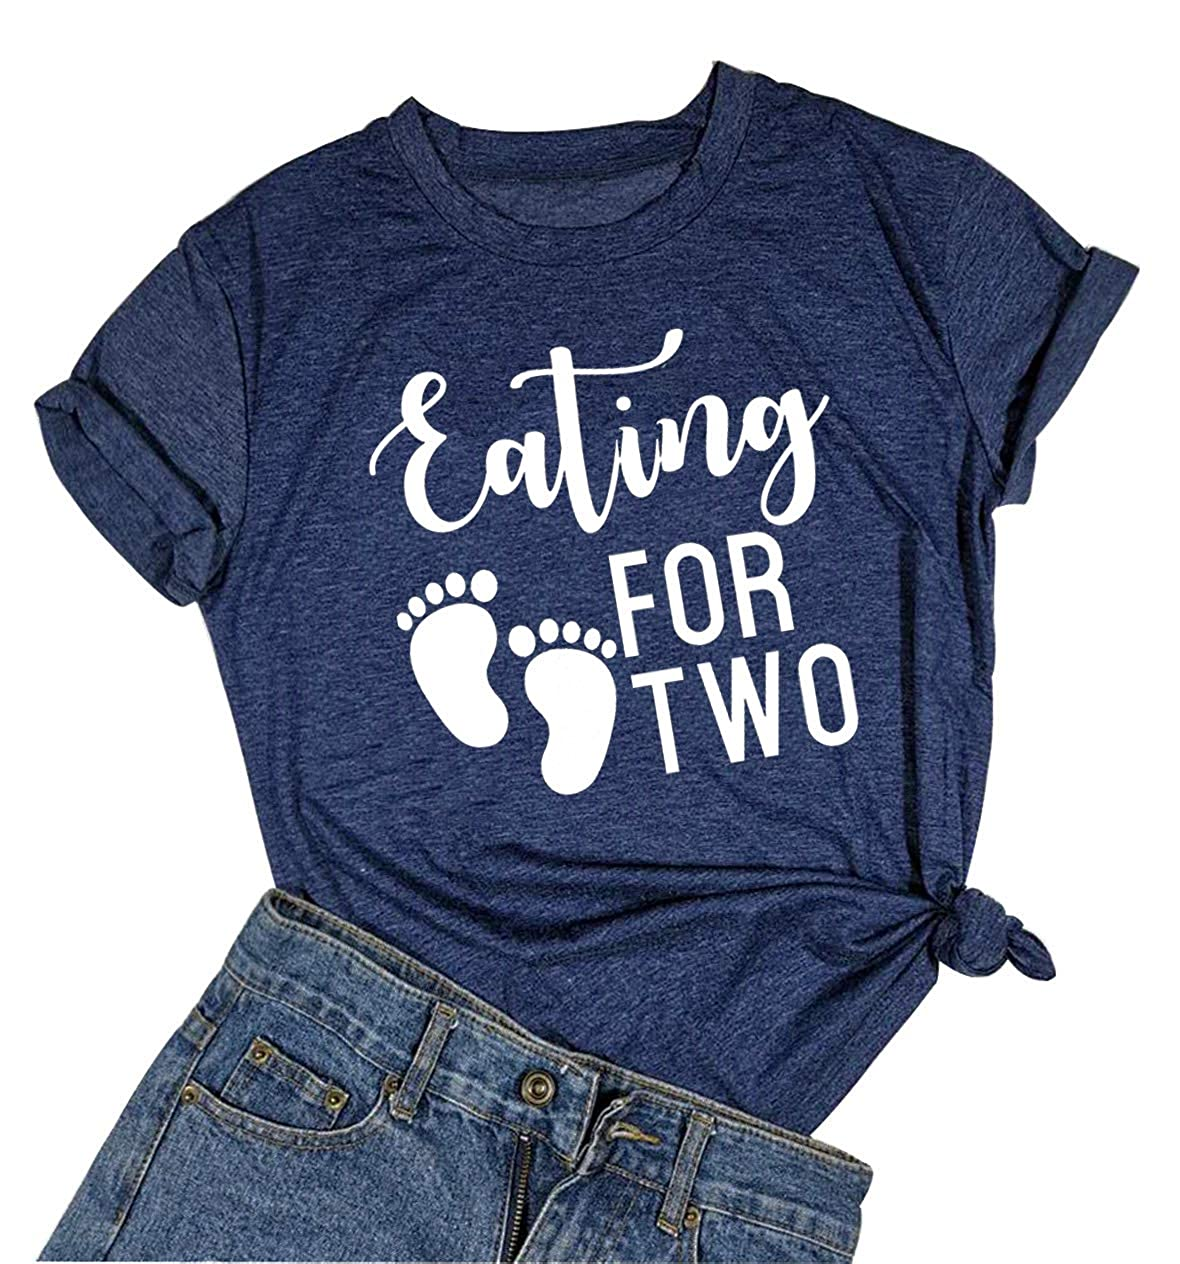 Eating Tacos for Two Pregnancy Announcement Funny T Shirt Women Casual Short Sleeve Tops